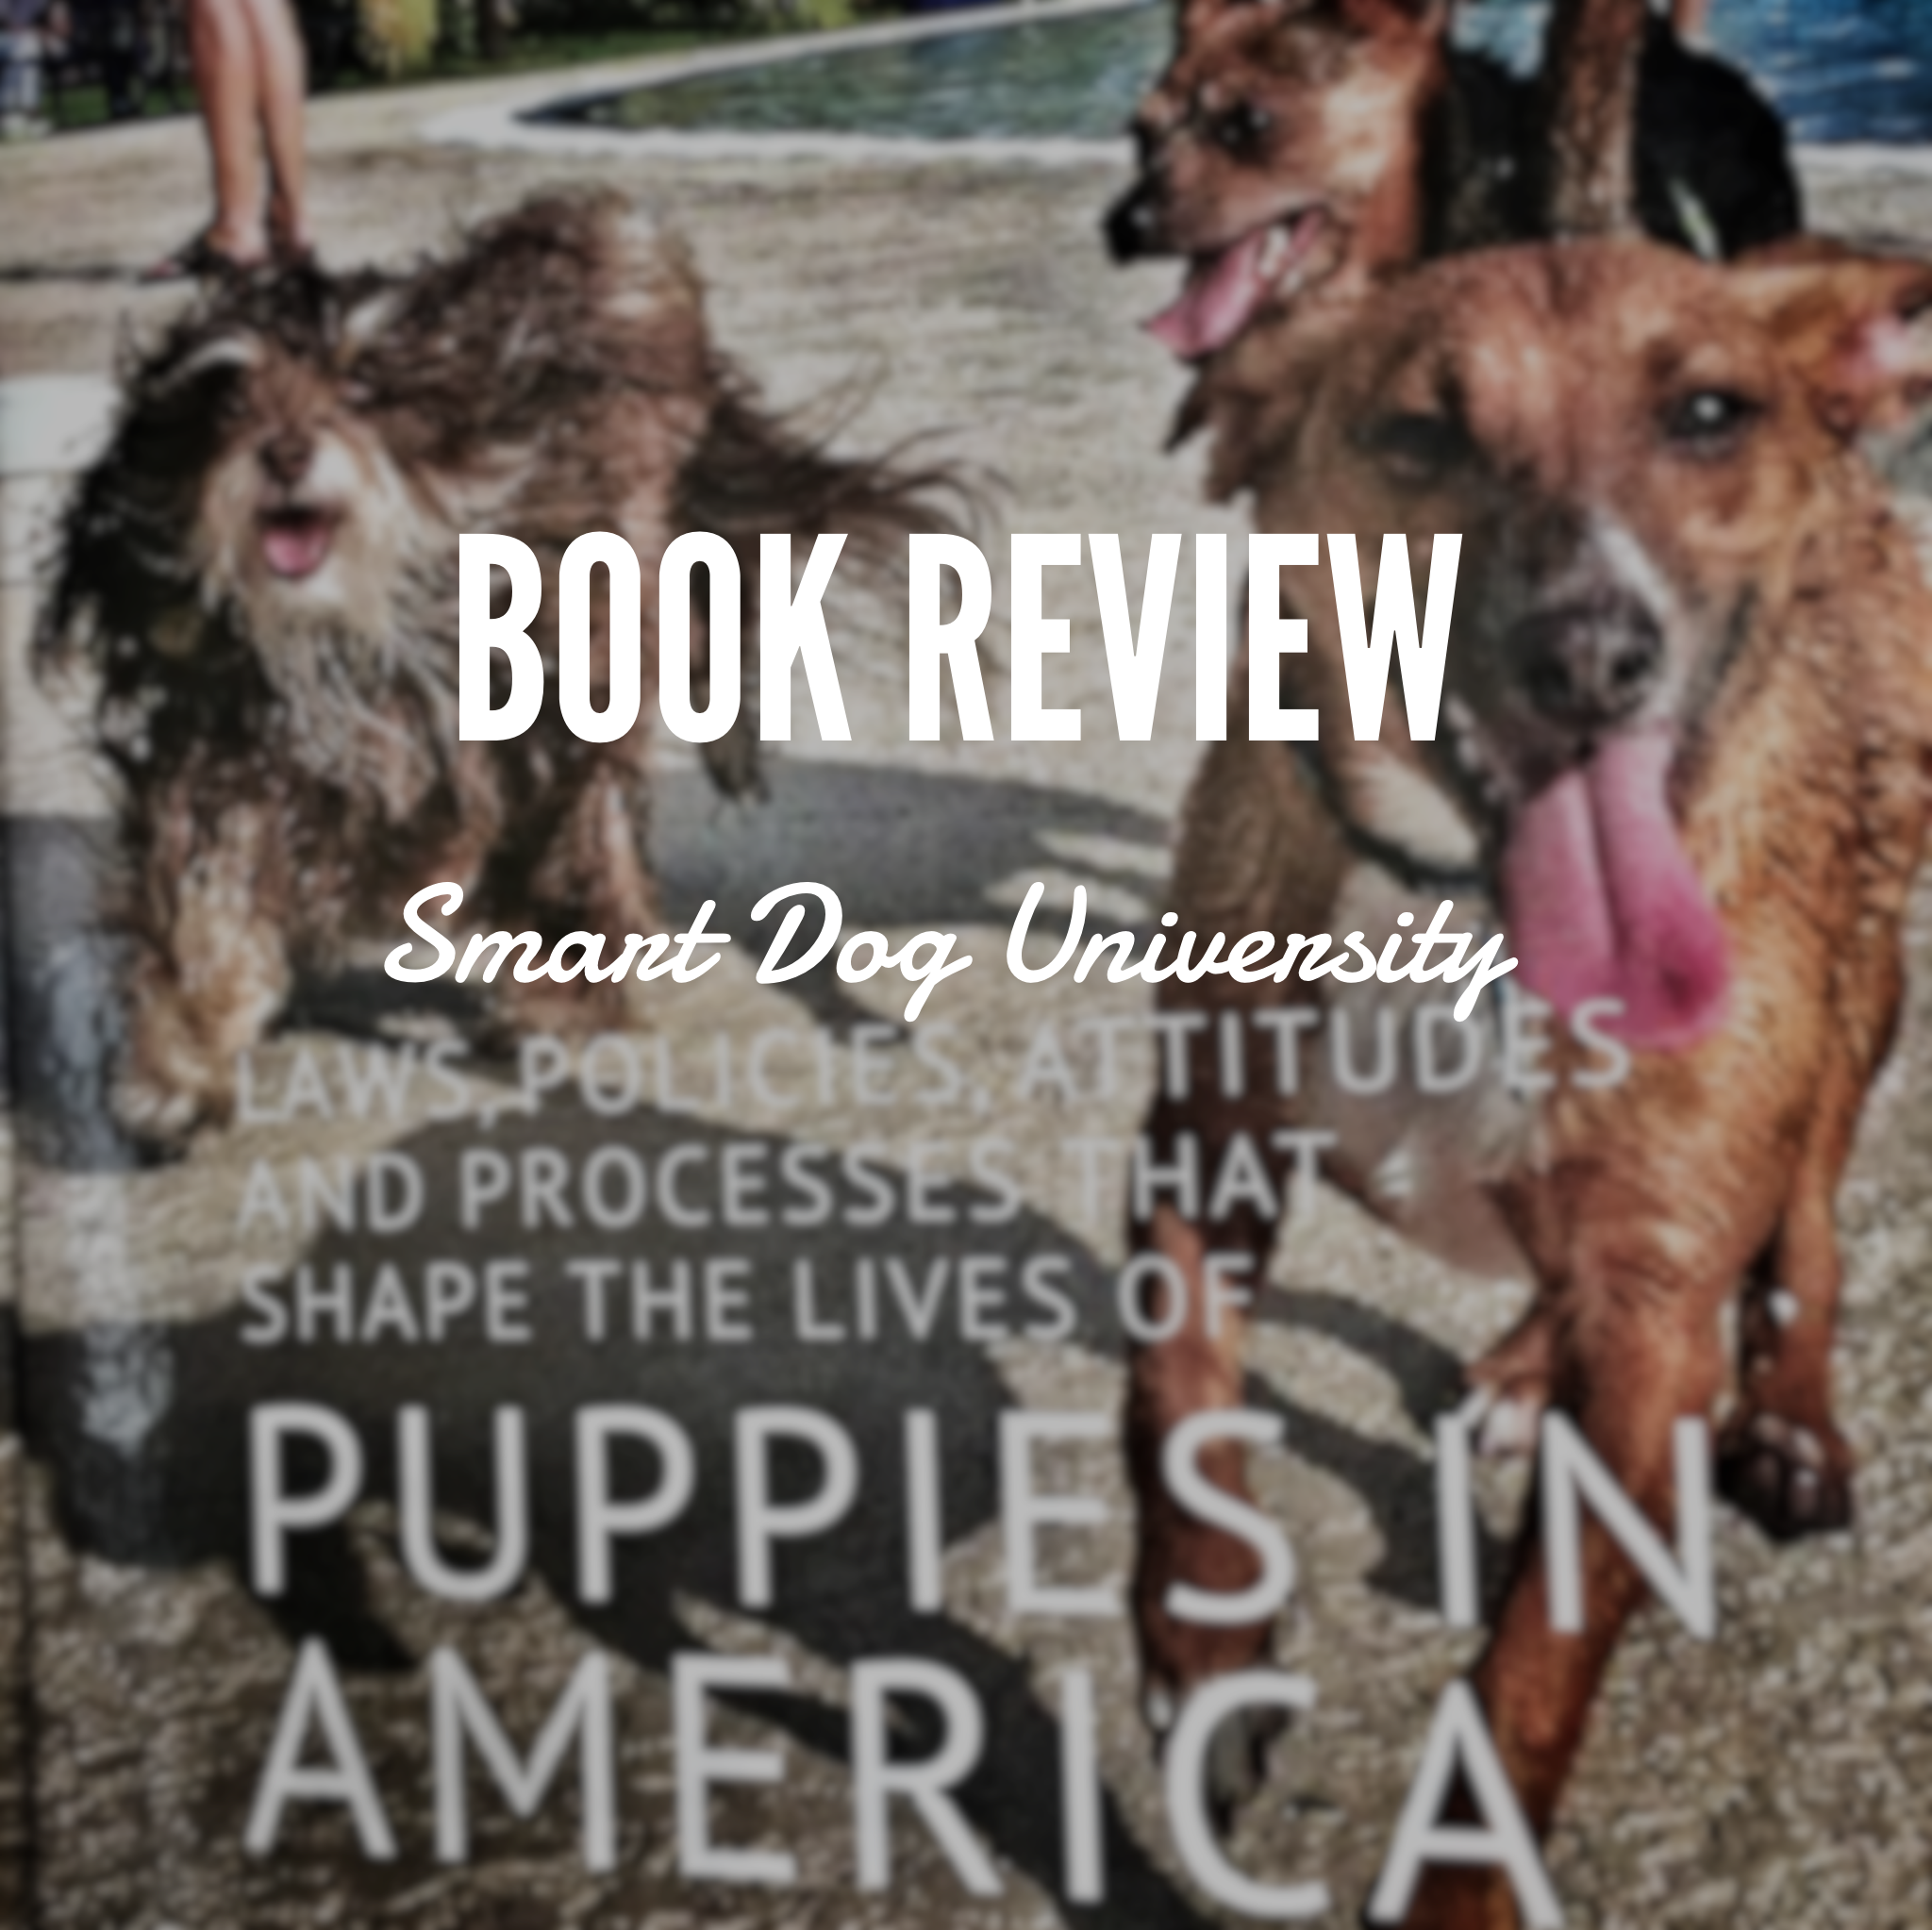 Book review, smart dog university, Frederick, Mount Airy, Maryland, dog training, clicker